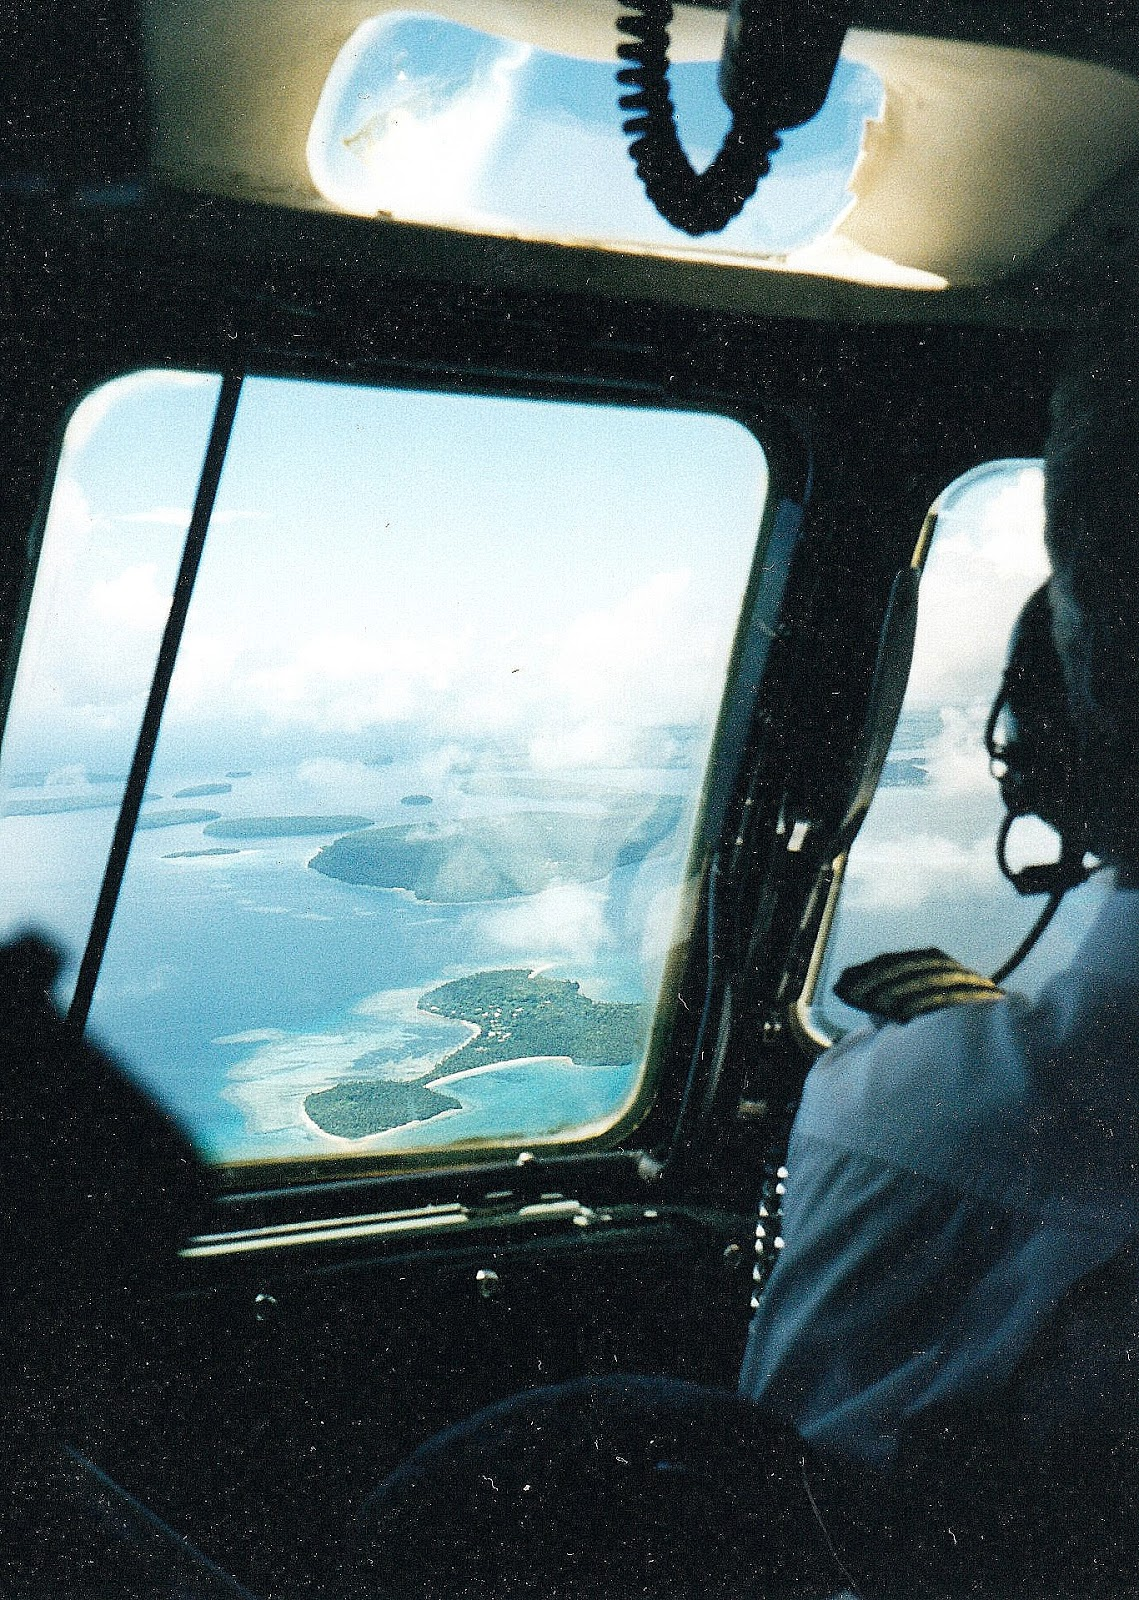 Tonga from the air is a beautiful archipelago of islands